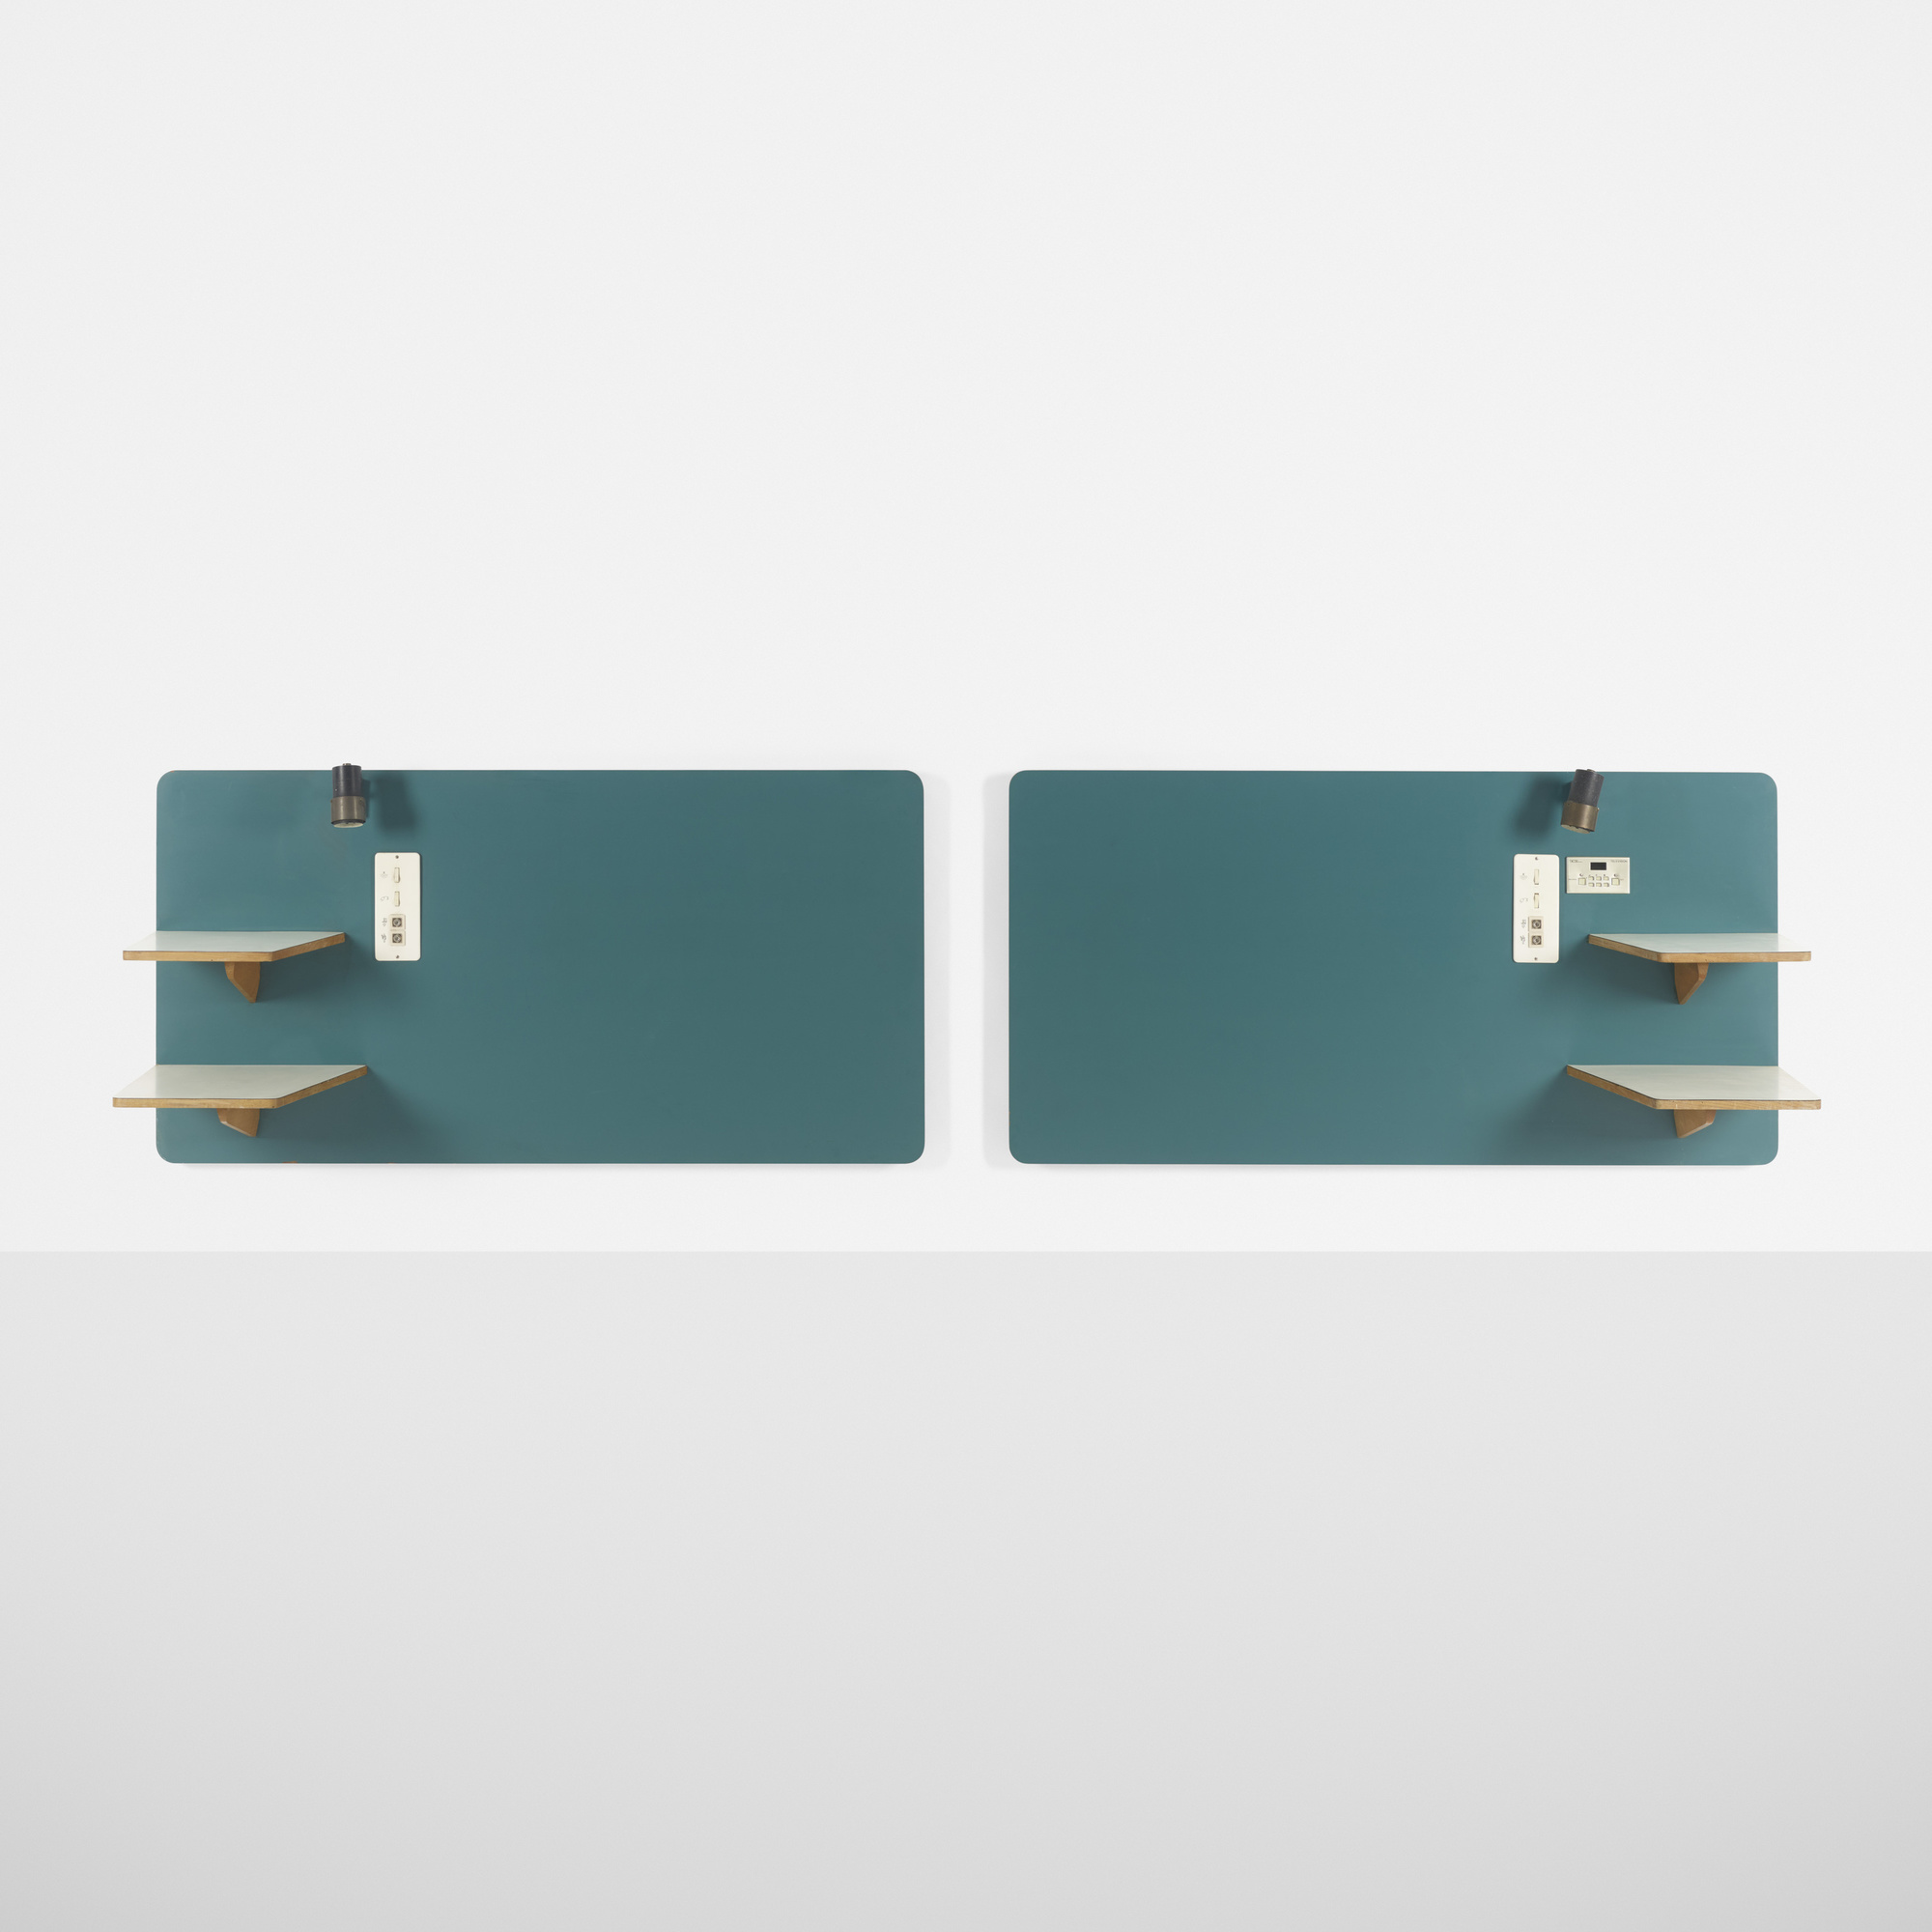 198: Gio Ponti / pair of headboards from the Hotel Parco dei Principi, Rome (1 of 1)